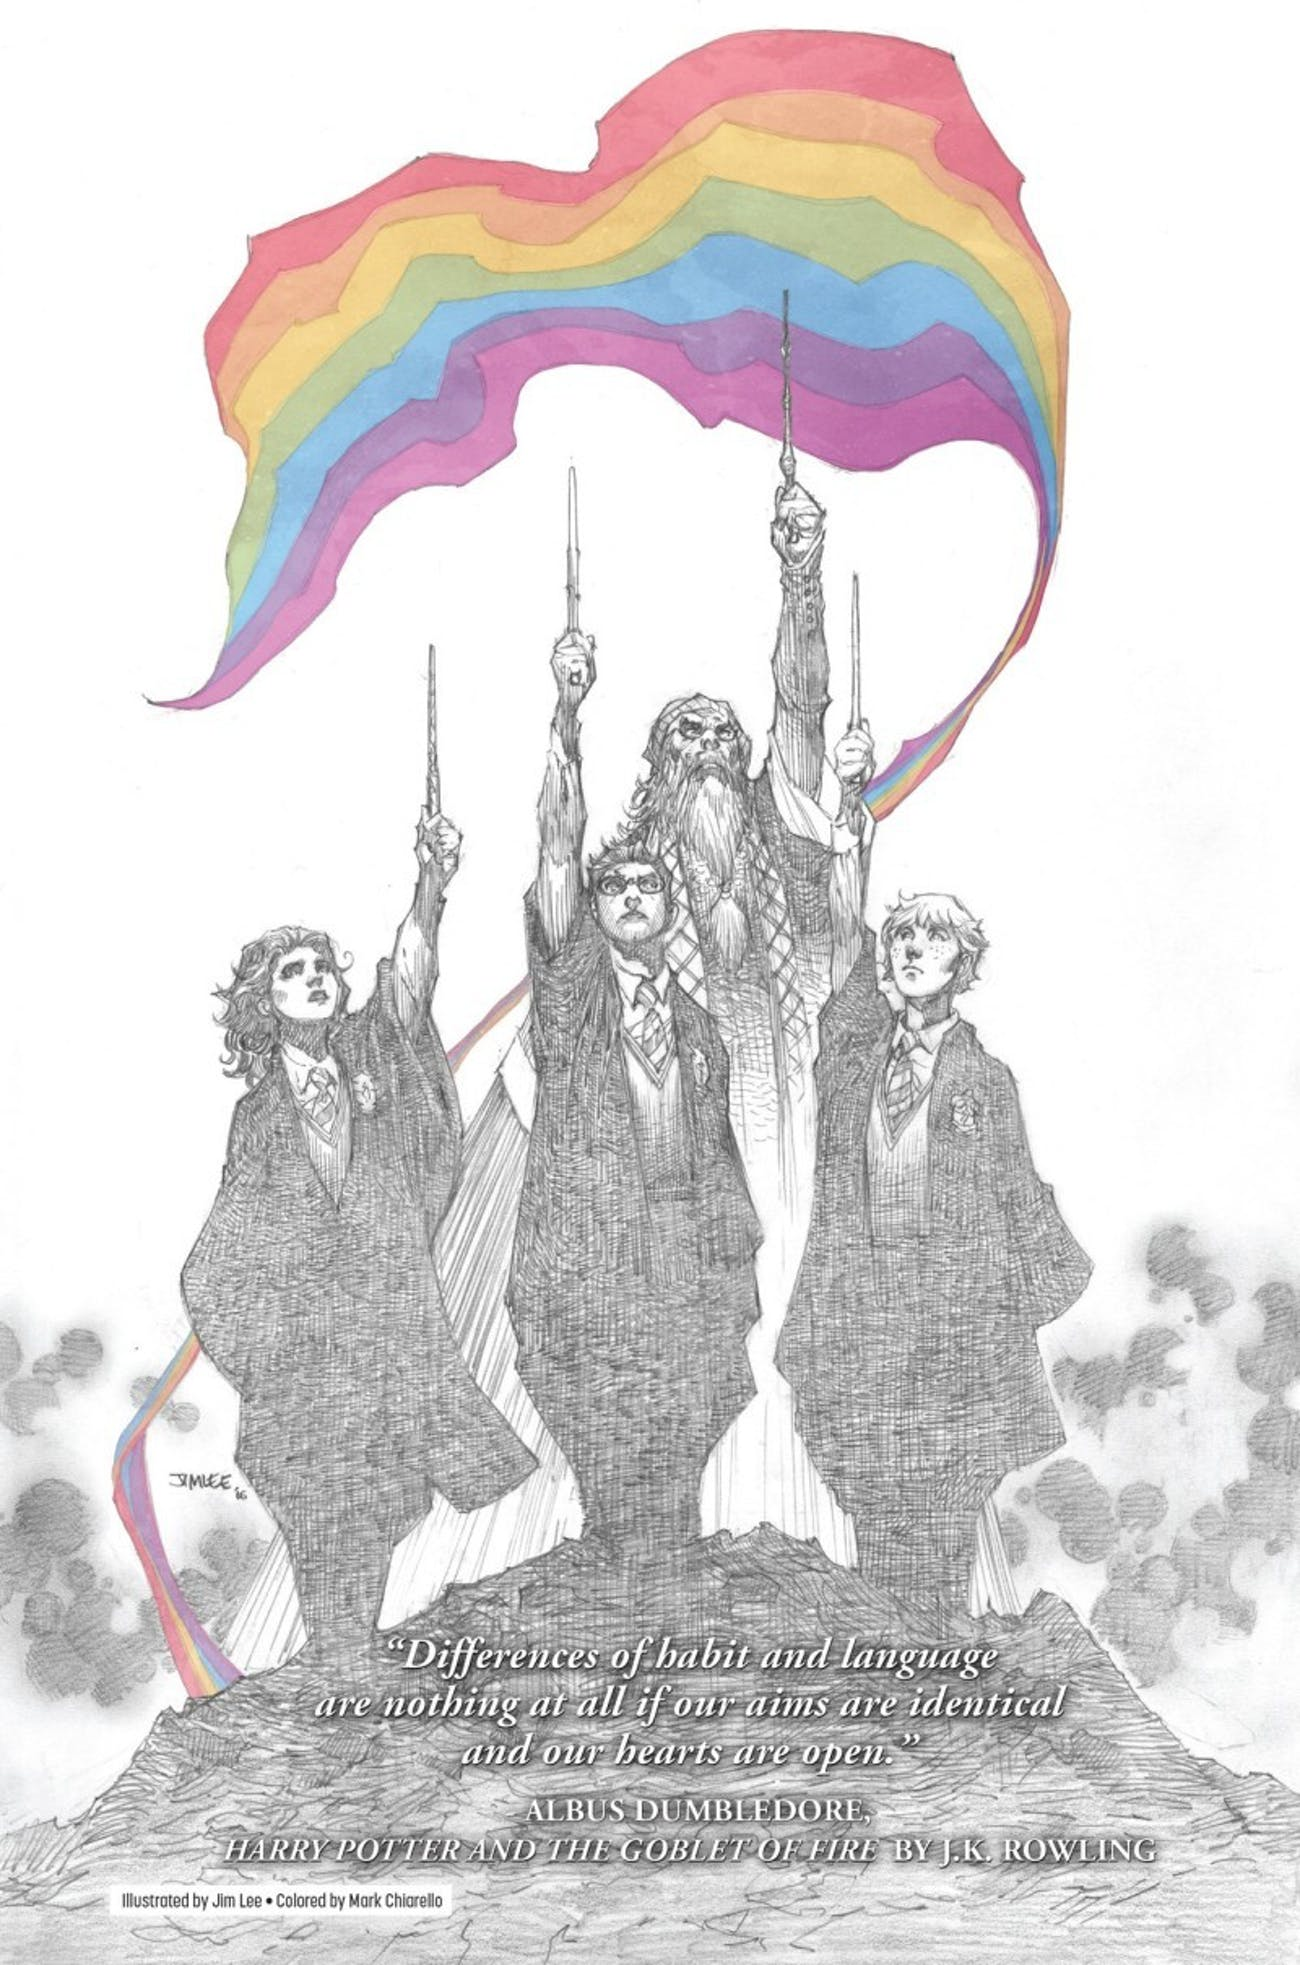 lee a co publisher of dc comics uses an oft forgotten but poignant quote from dumbledore in the illustration differences of habit and language are